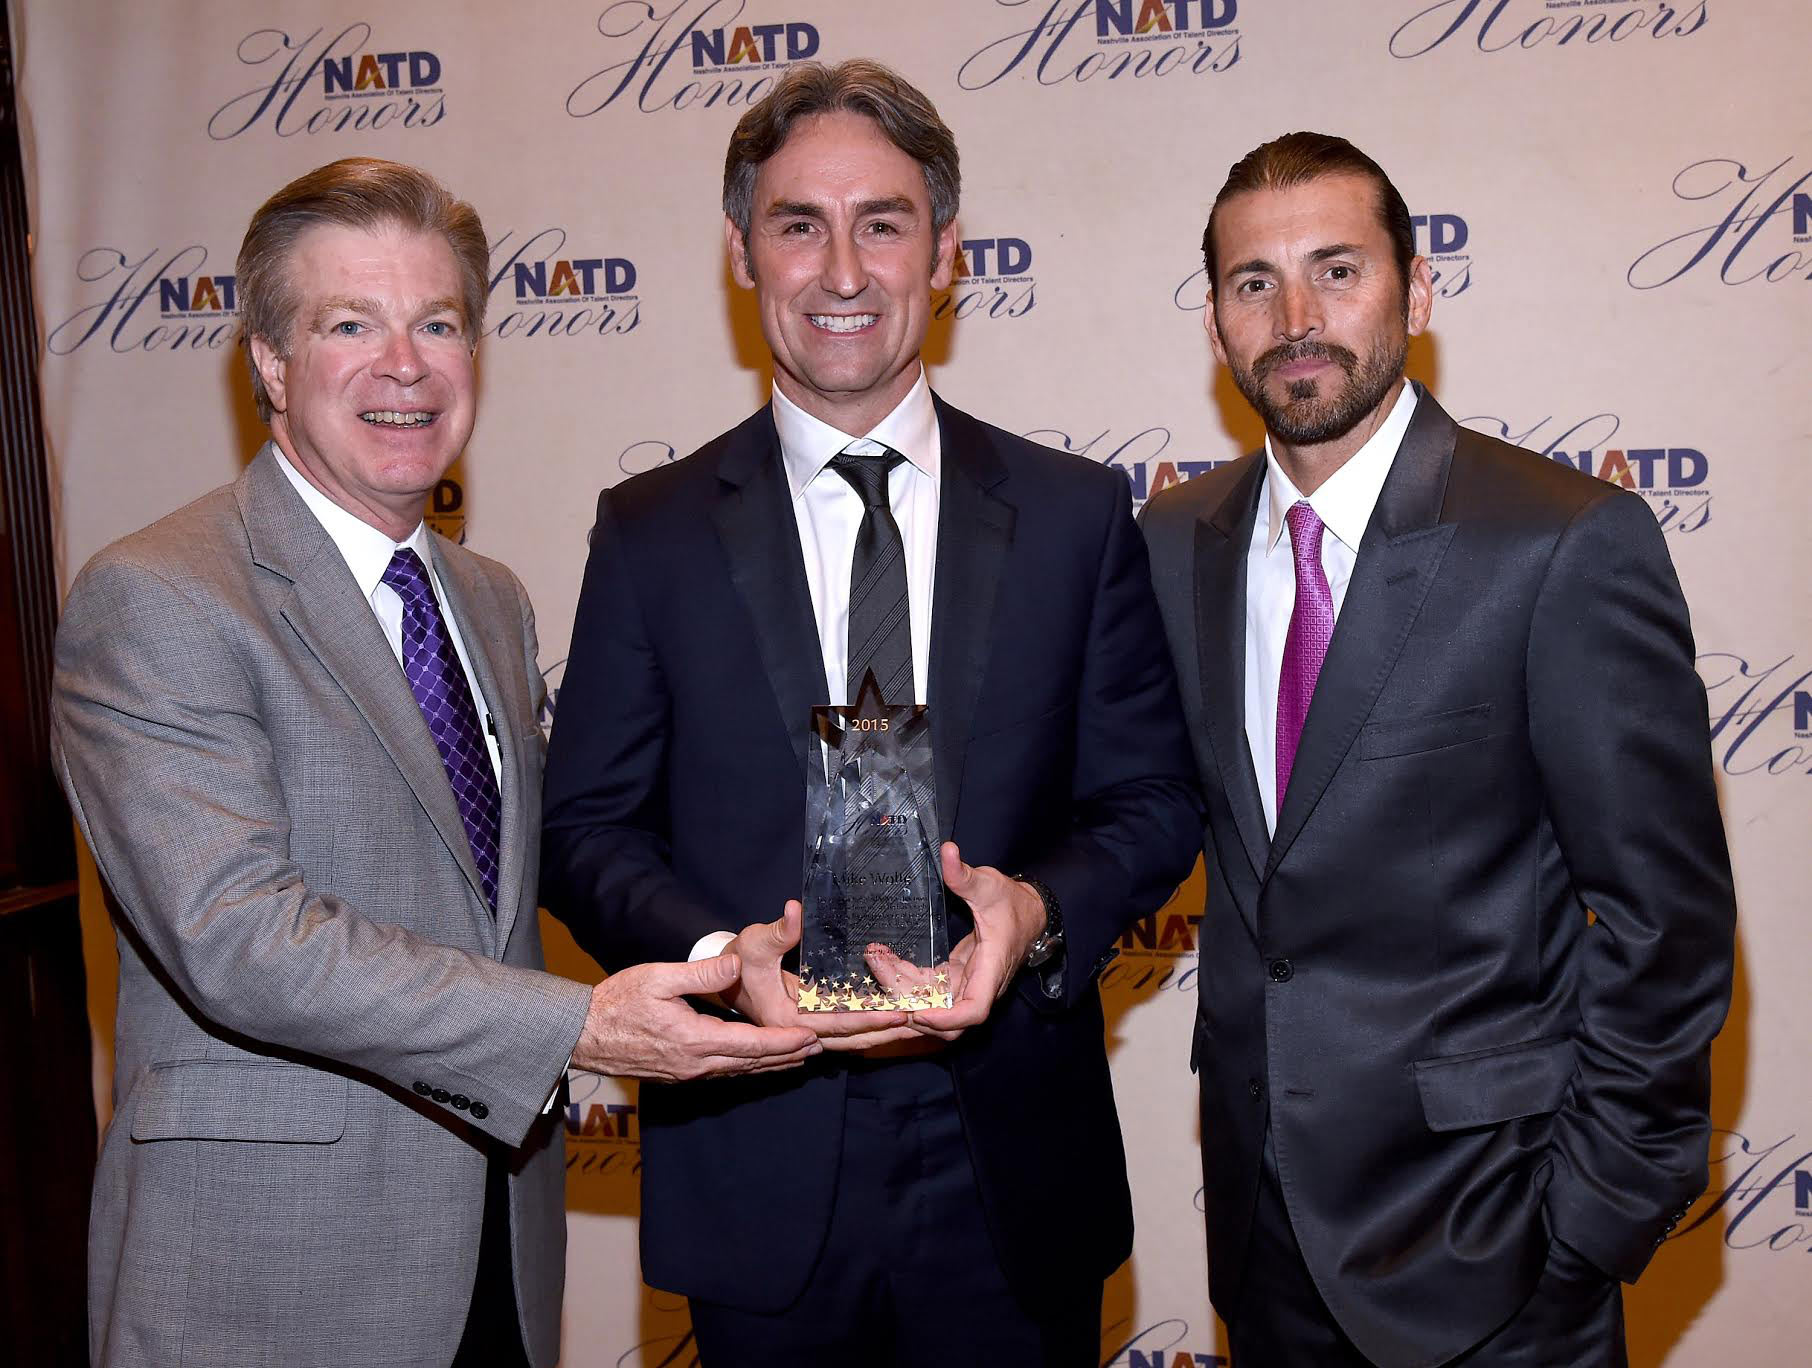 NATD President Steve Tolman, Creator and Host of American Pickers Mike Wolfe, and director/owner of Tacklebox Films Shaun Silva attend the NATD Honors Gala on November 9, 2015 in Nashville, Tennessee. (Photo by Rick Diamond/Getty Images for NATD)